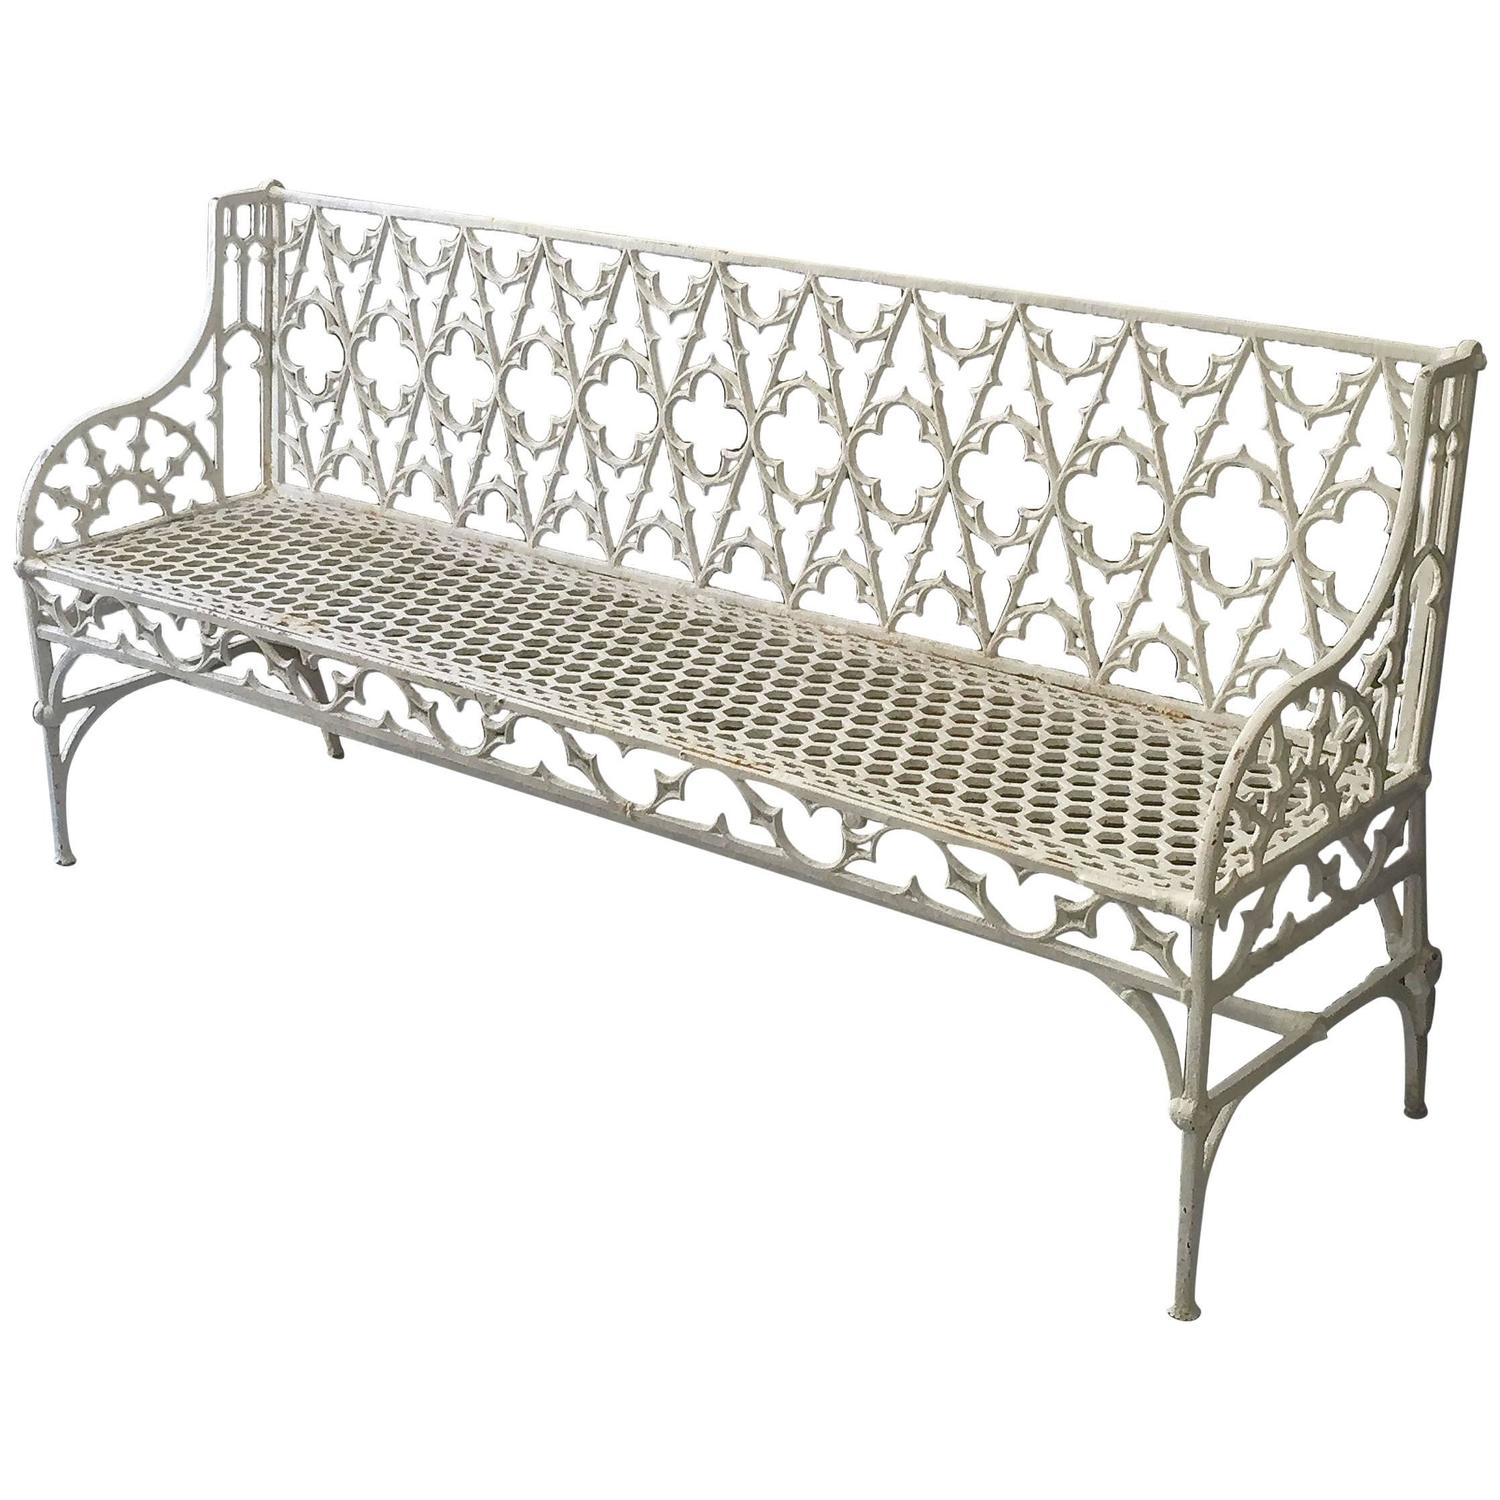 Large French Val D 39 Osne Cast Iron Garden Bench At 1stdibs